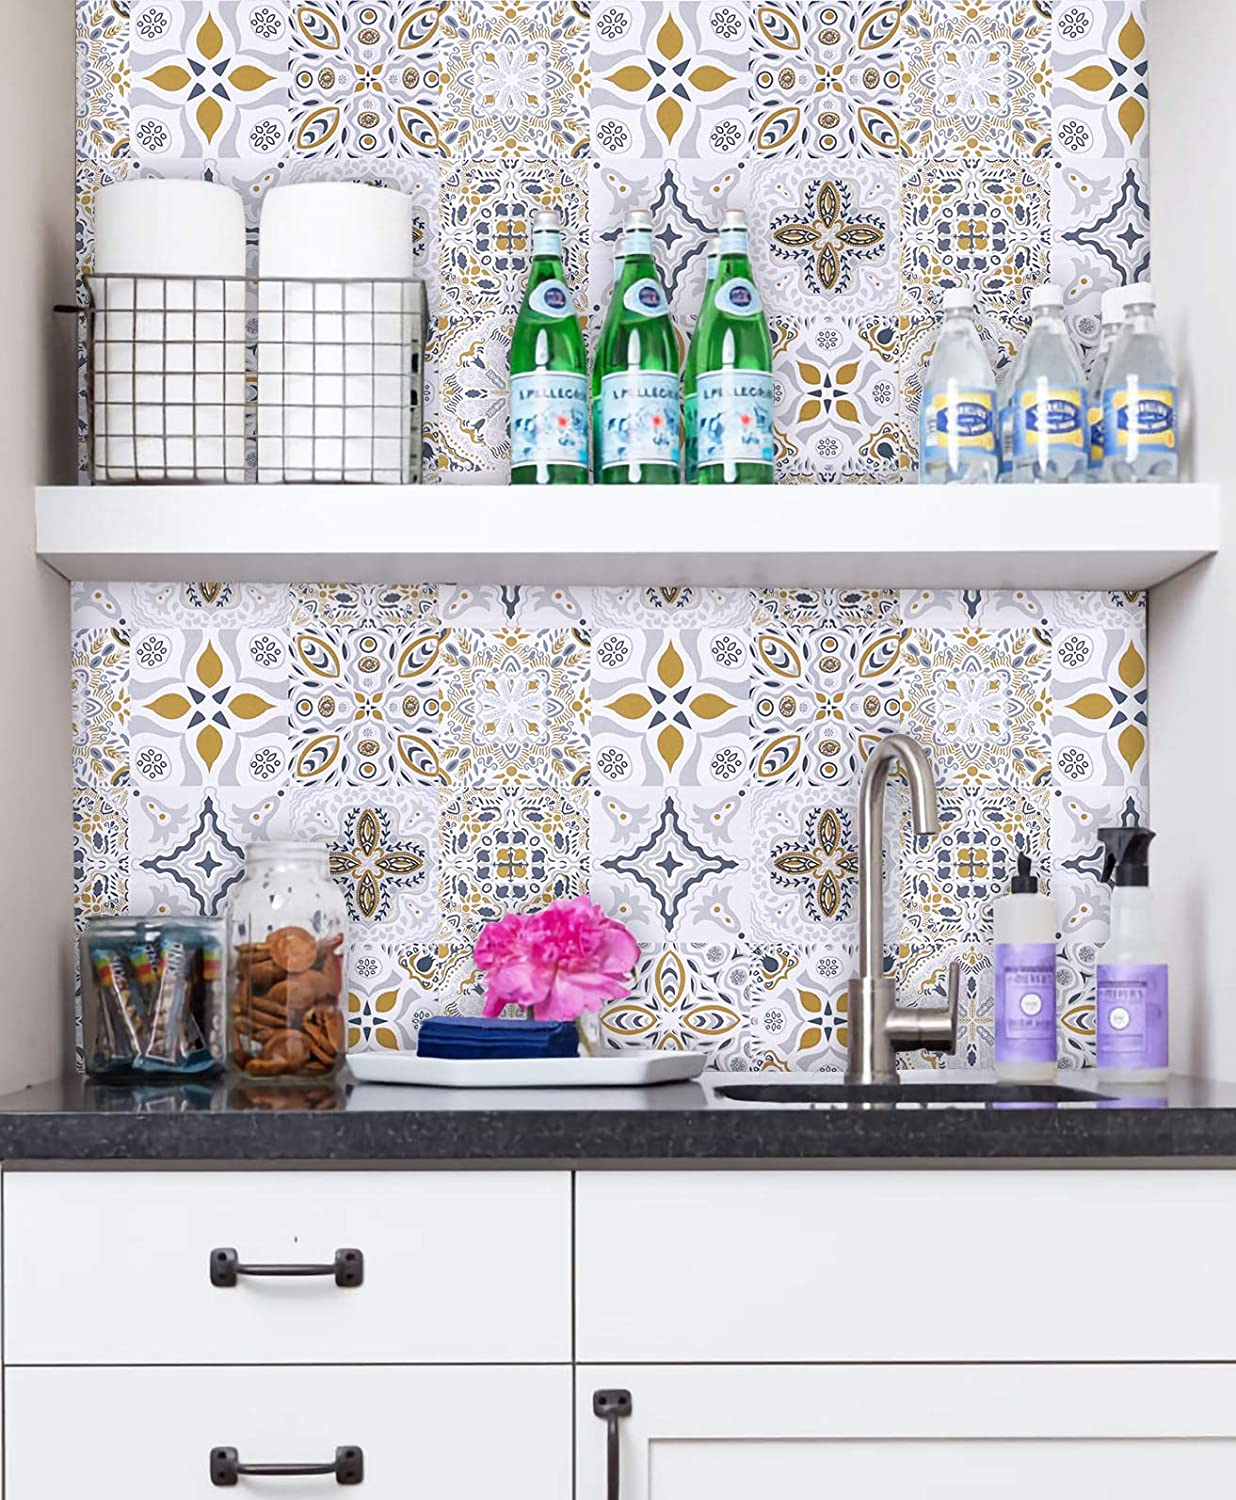 HeloHo 196.85X16.5 Thicken Glossy Tile Pattern Contact Paper Peel and Stick Wallpaper Removable Waterproof Wall Covering Self Adhesive Vinyl Film Roll Kitchen Backsplash Shelf Drawer Liner Stair DIY